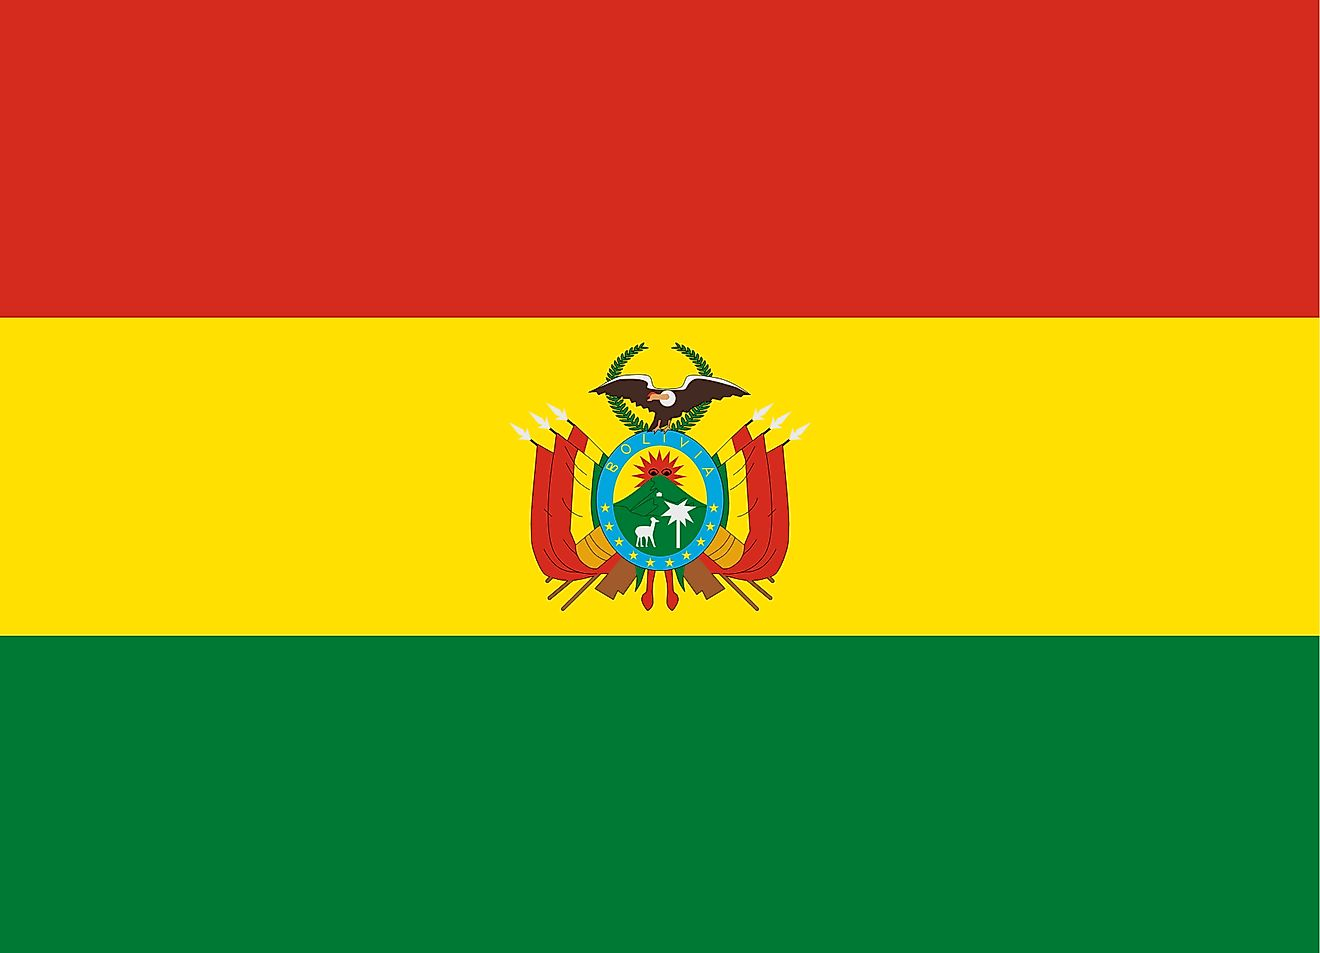 The National Flag of Bolivia with horizontally striped red-yellow-green bands, with the Bolivian Coat of Arms in the central yellow band